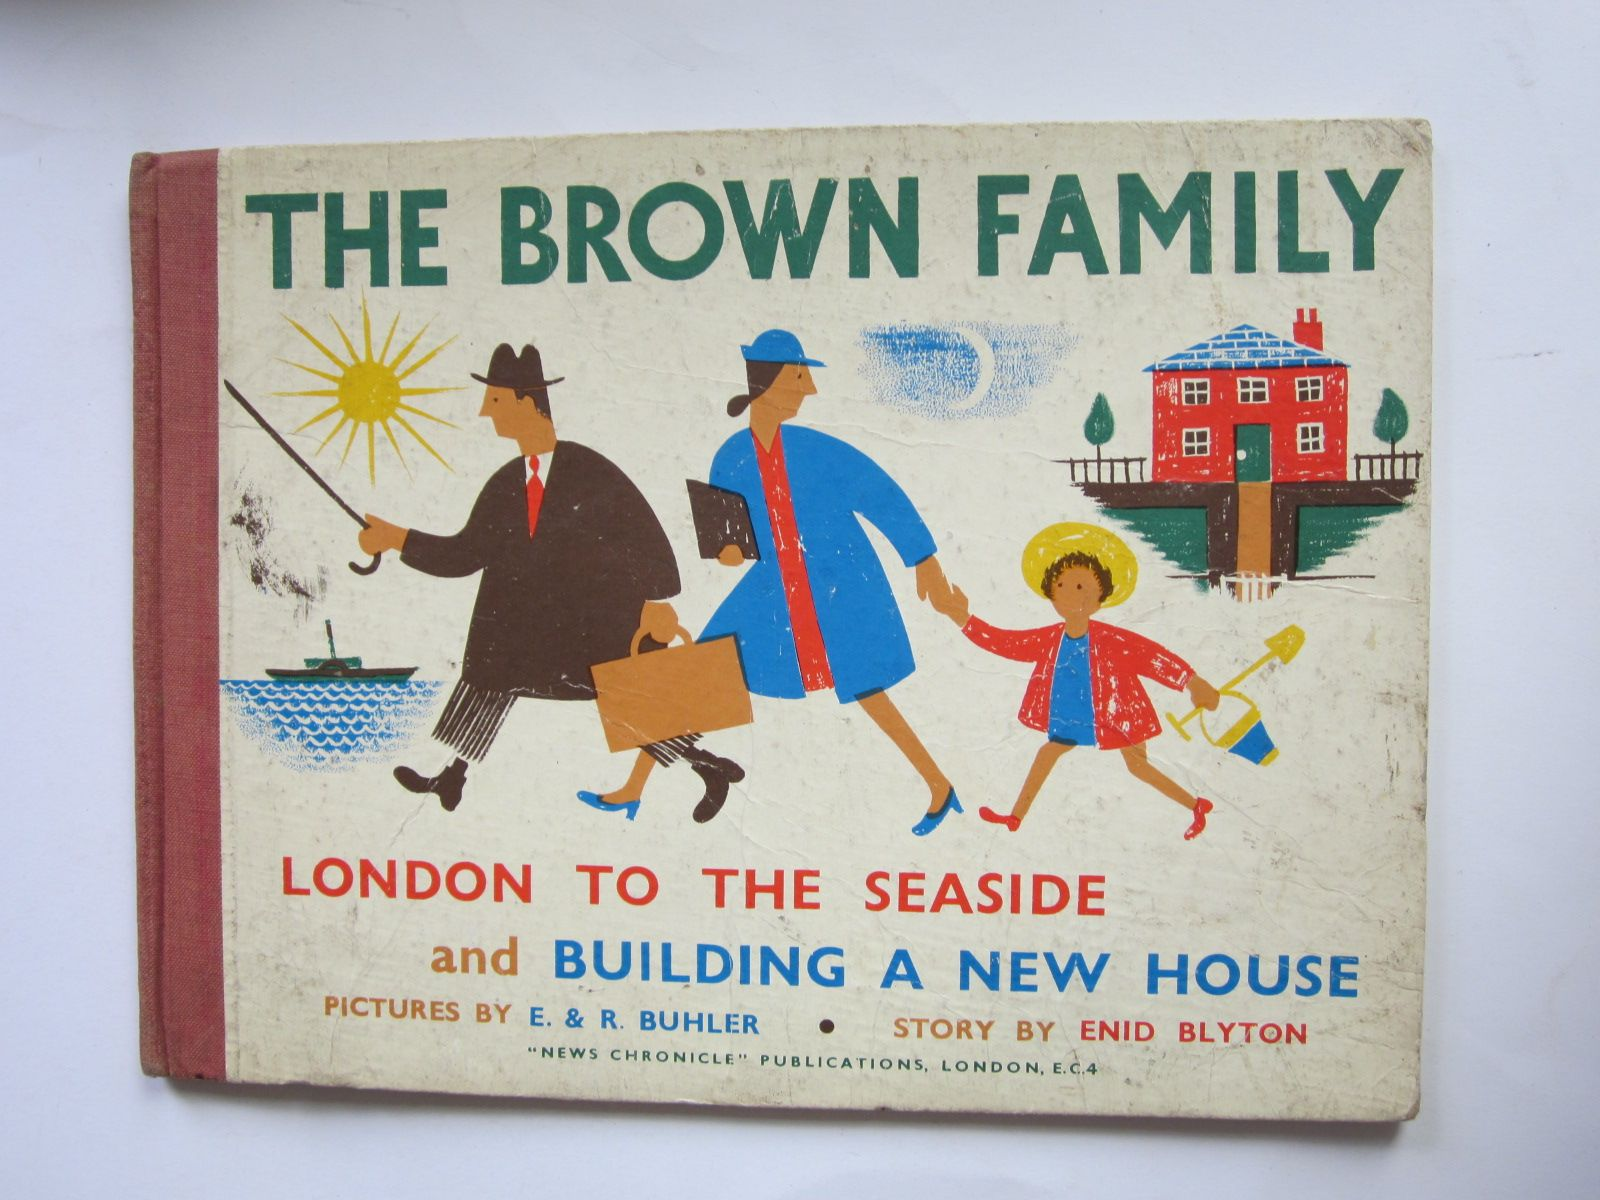 Photo of THE BROWN FAMILY written by Blyton, Enid illustrated by Buhler, E. Buhler, R. published by News Chronicle (STOCK CODE: 1309078)  for sale by Stella & Rose's Books